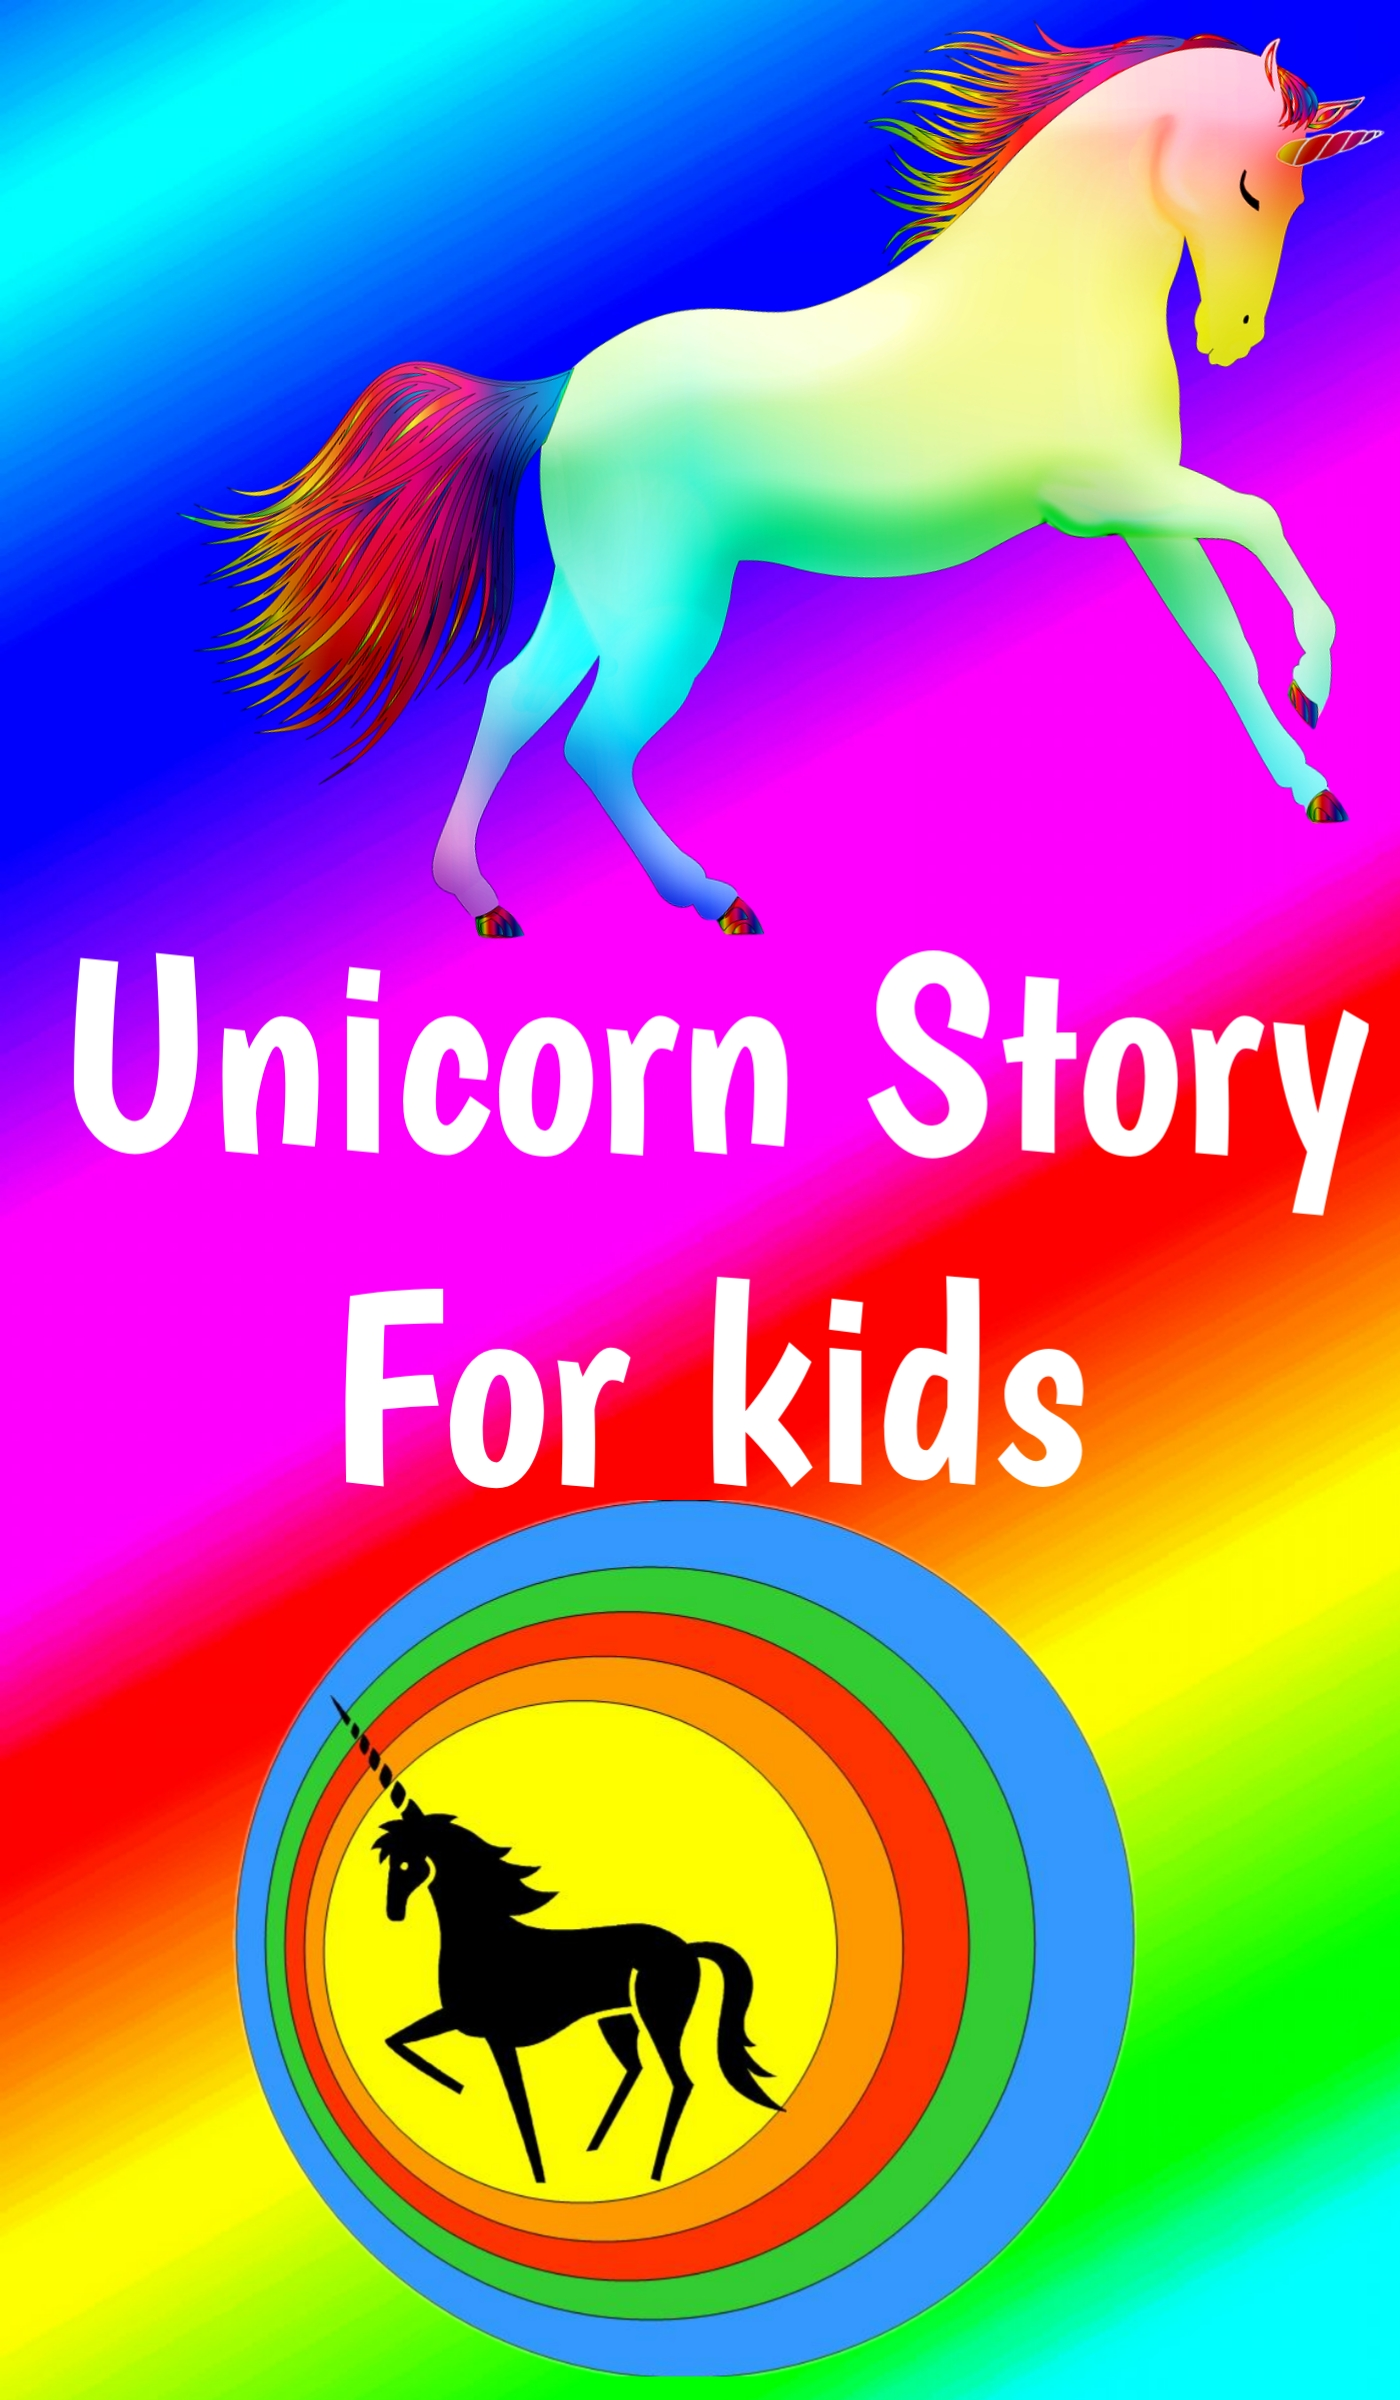 Unicorn Story For Kids in Hindi